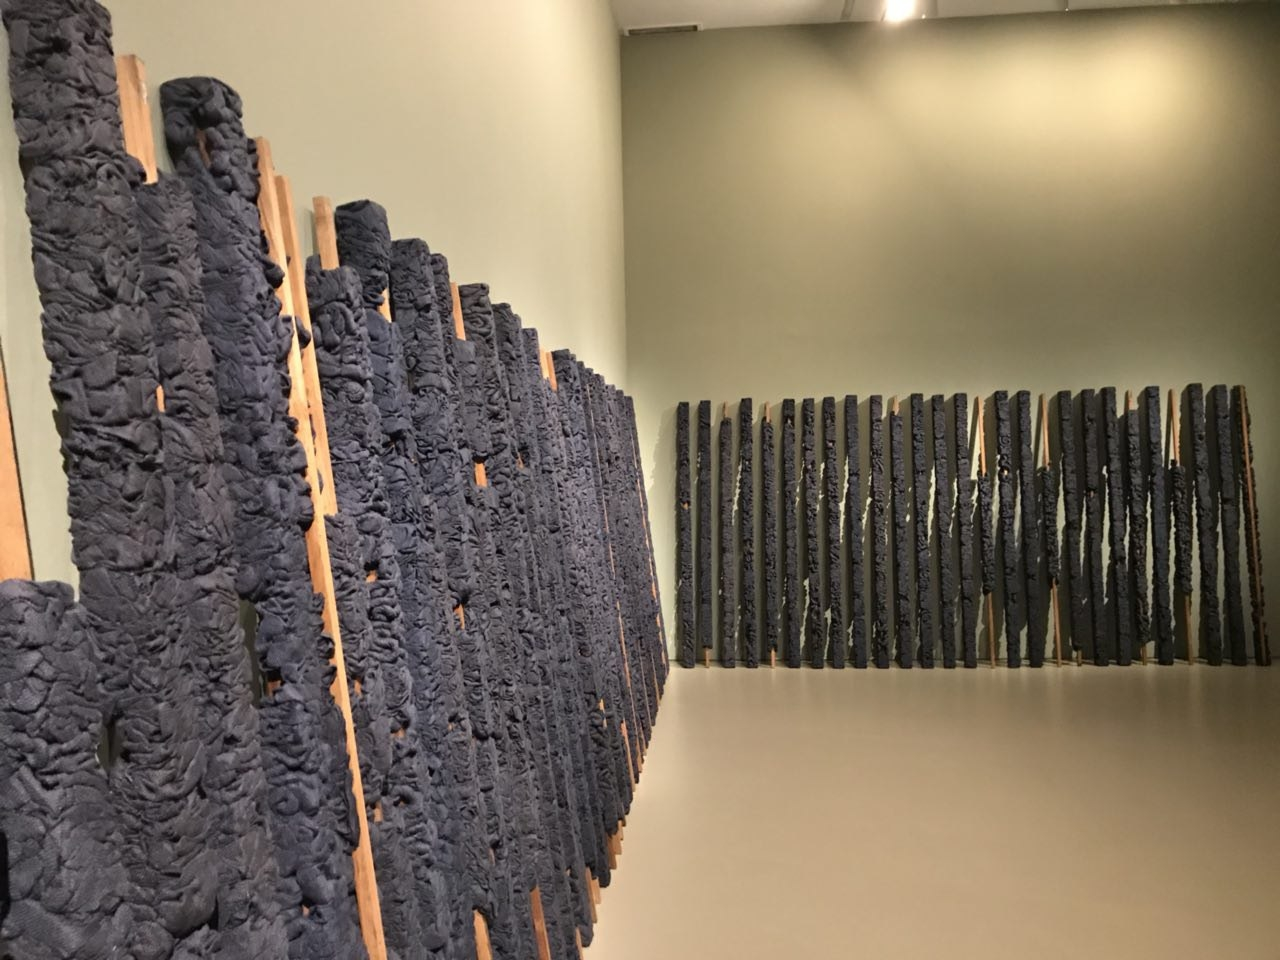 Compressed indigo jute cloths and wood, by Manish Nai, 2018.